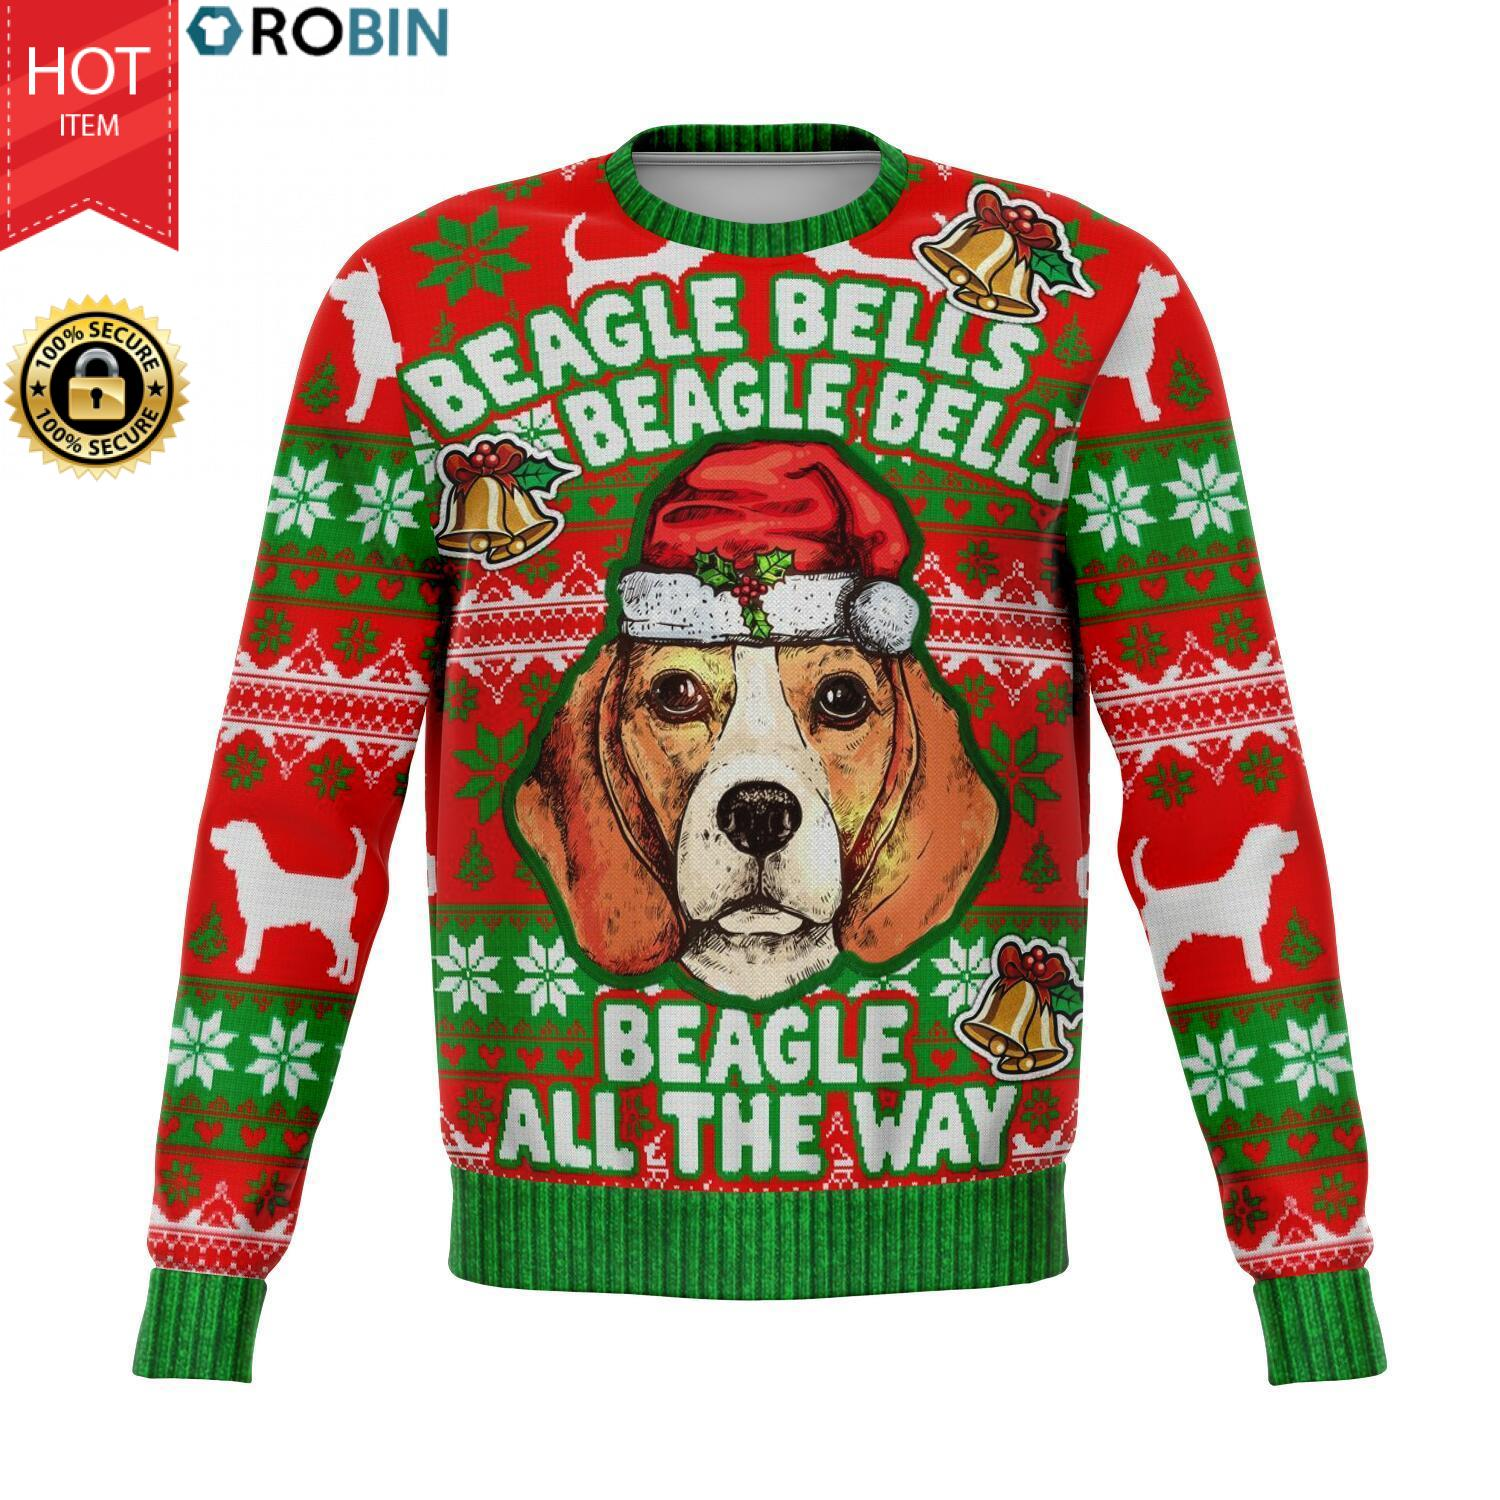 Beagle Bell All The Way Christmas 3D Allover Printed Wool Sweater